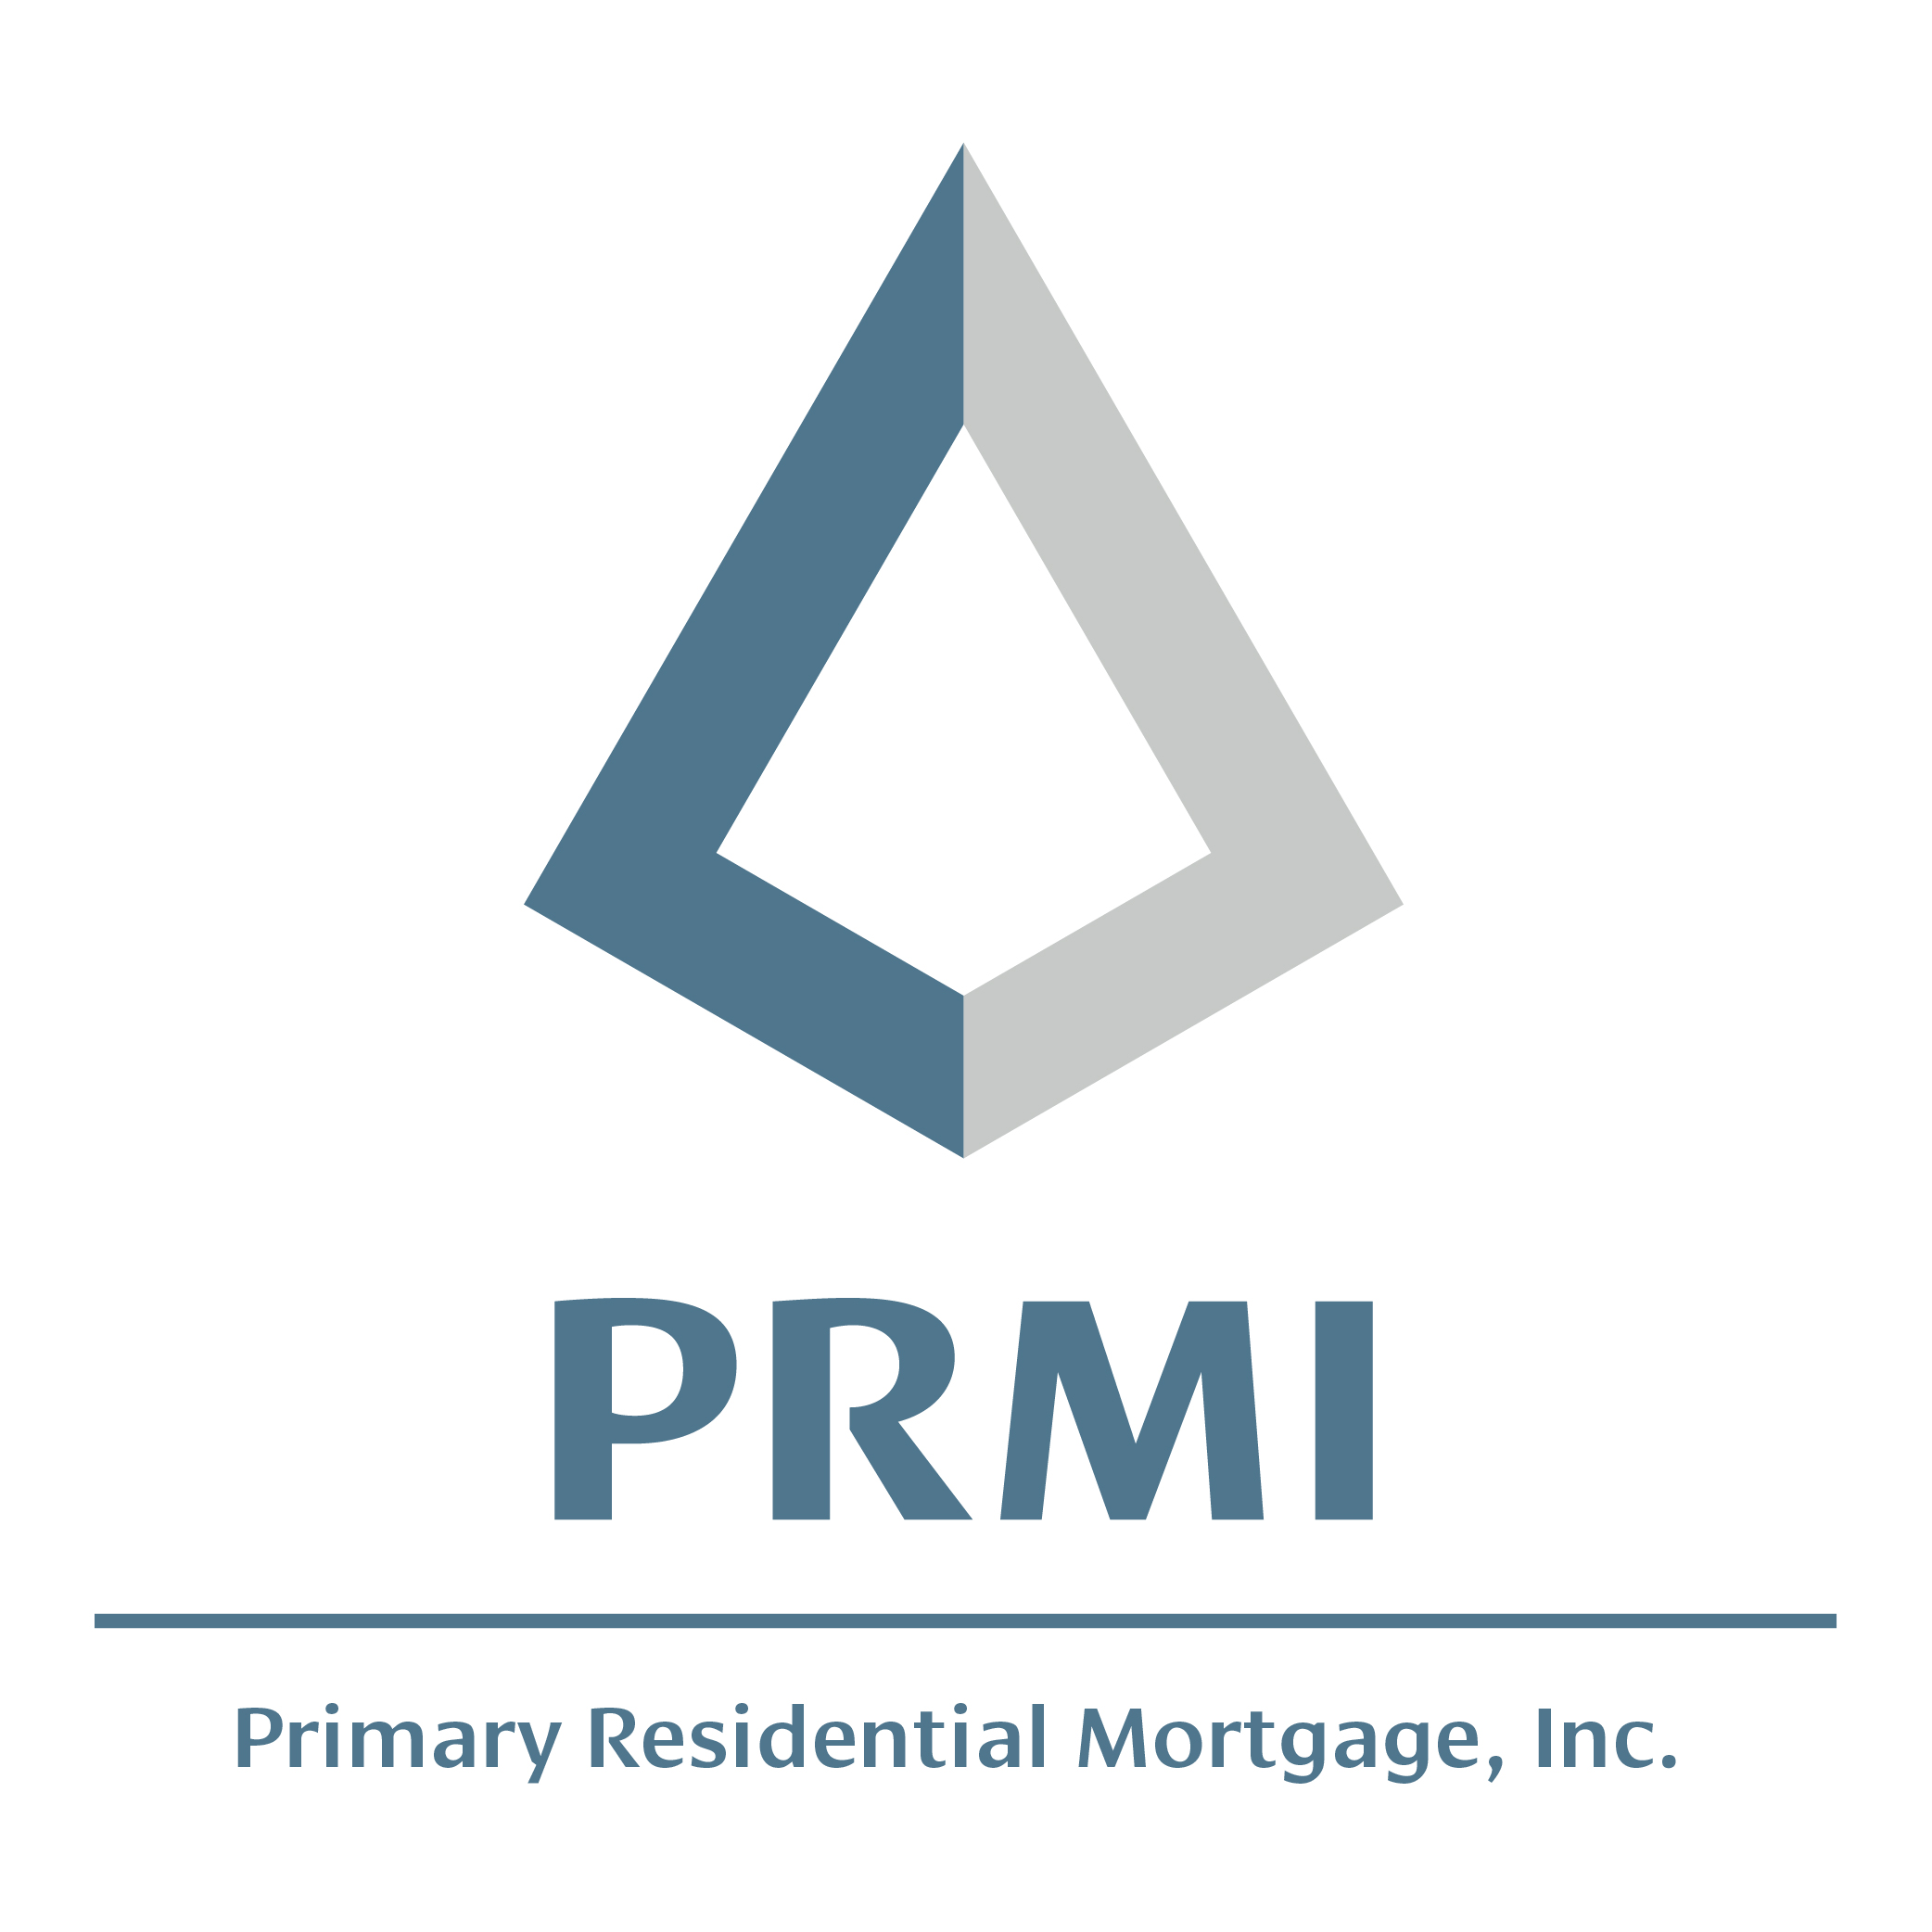 Primary Residential Mortgage, Inc. - Federal Way, WA 98003 - (253)642-4400   ShowMeLocal.com